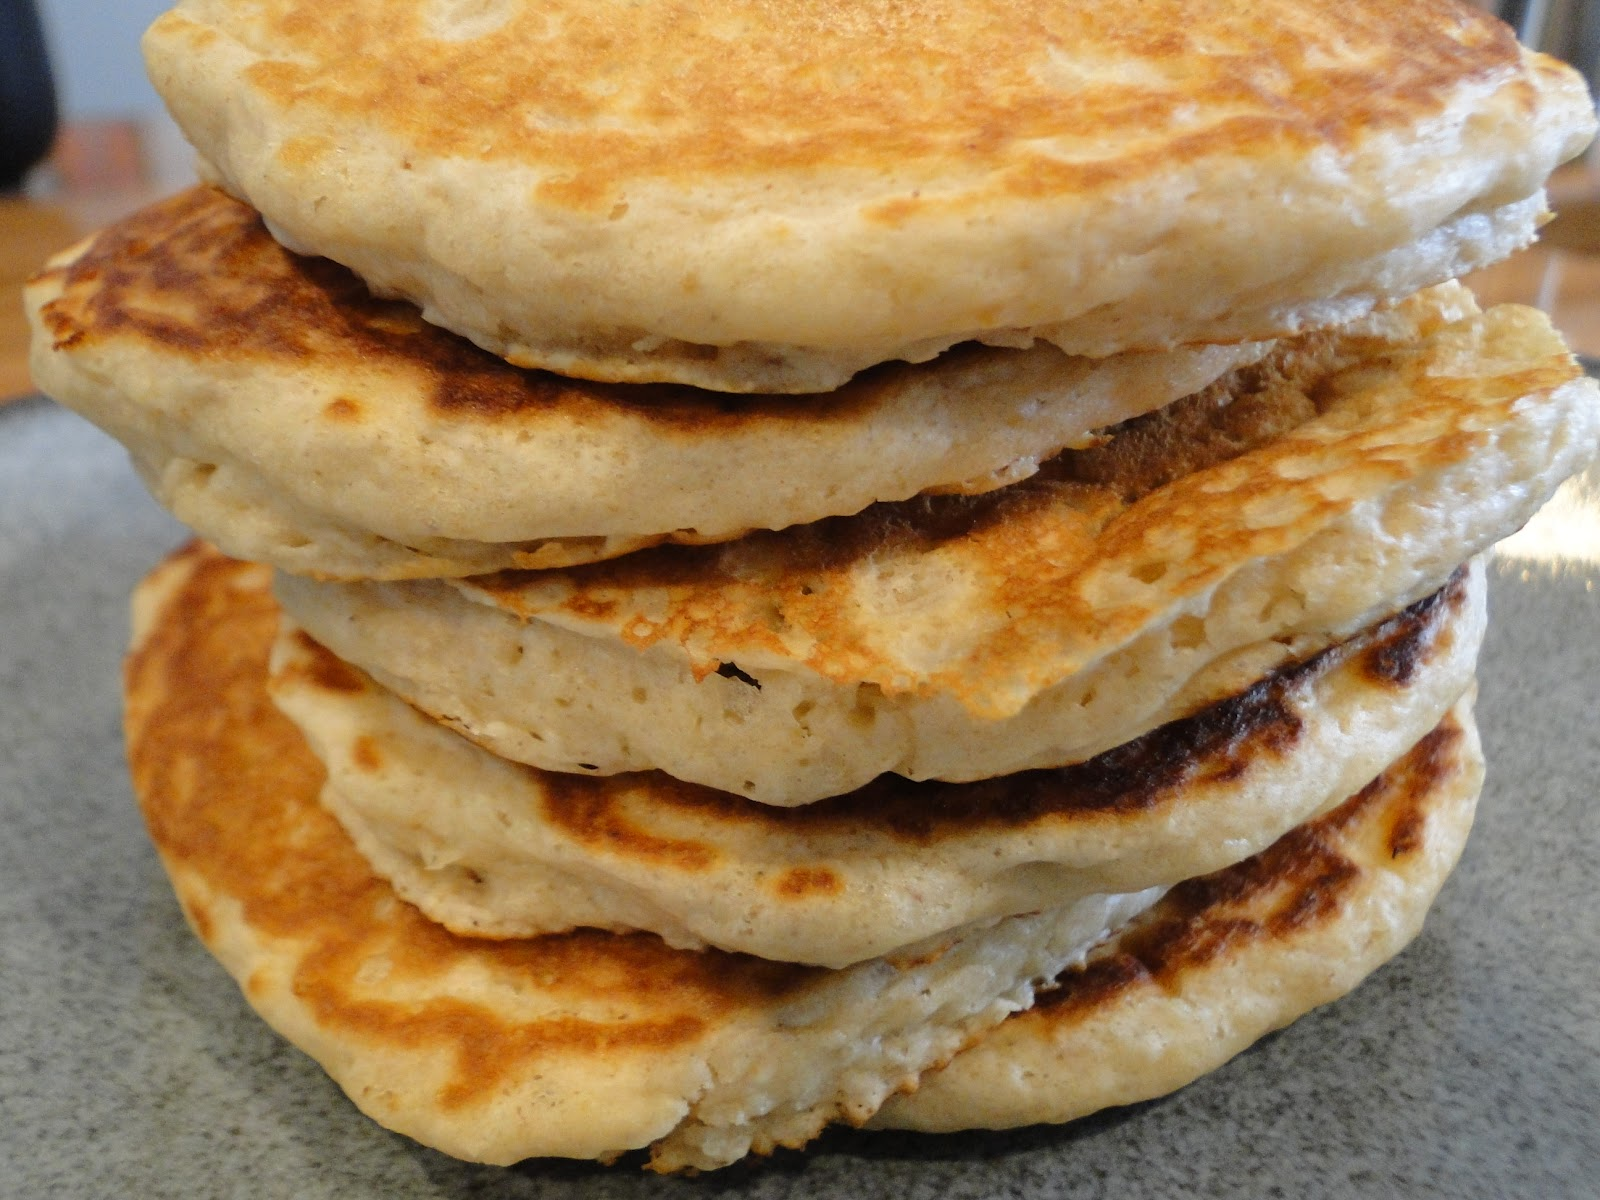 ... : Go-To Recipe: Best From-Scratch Oatmeal Pancakes